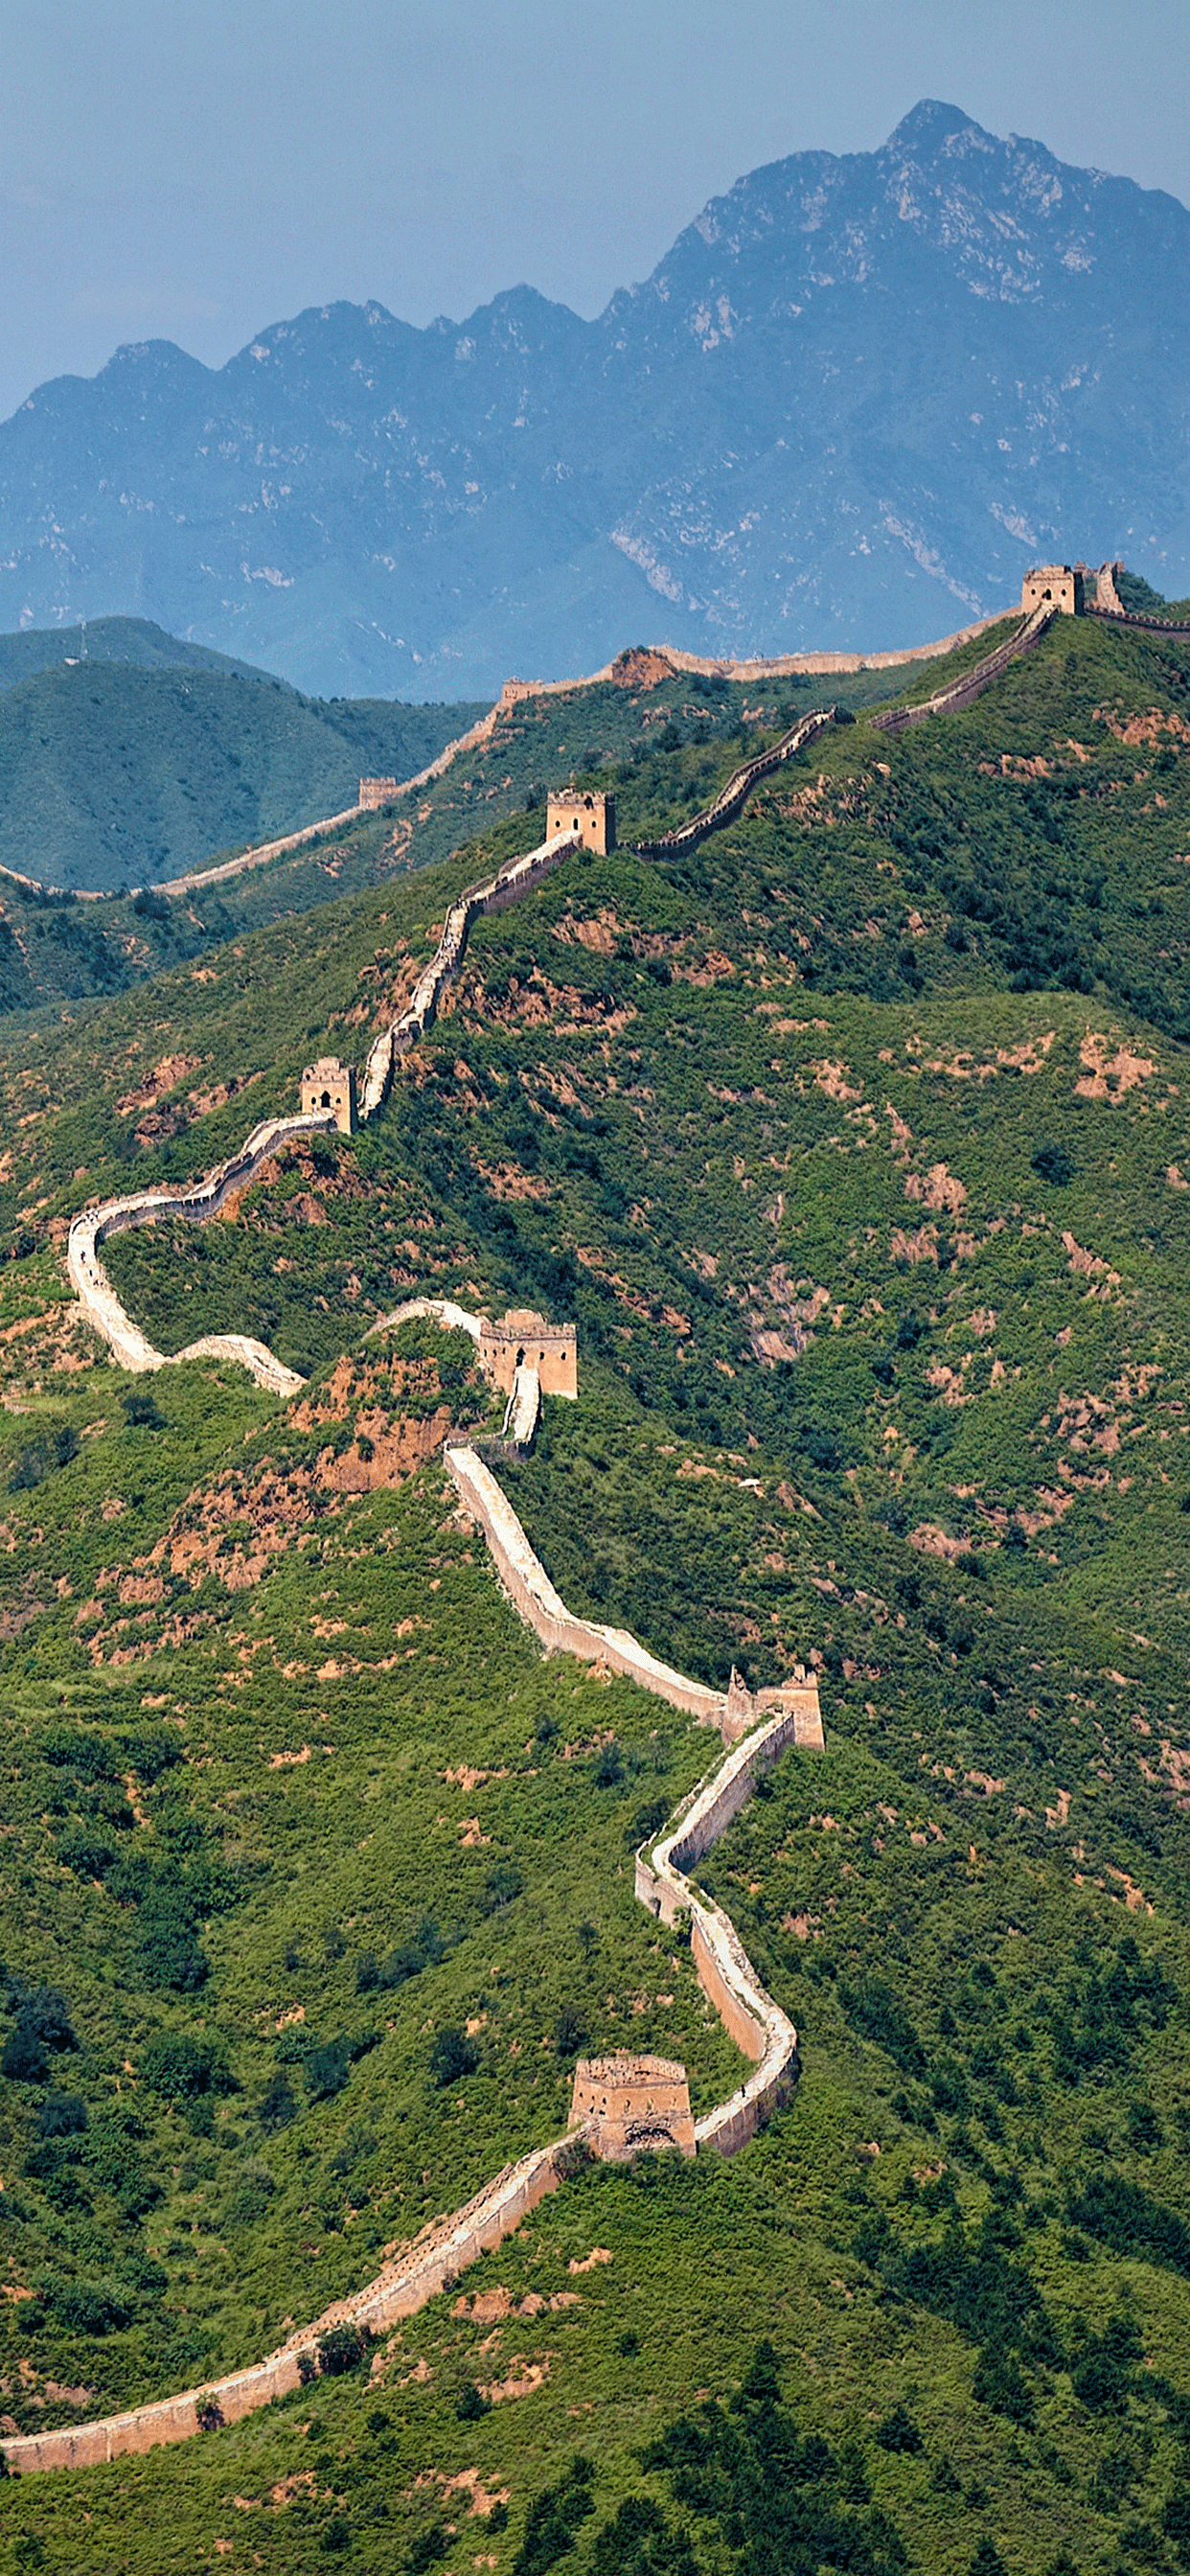 iPhone wallpapers great wall of china mountains The great Wall of China